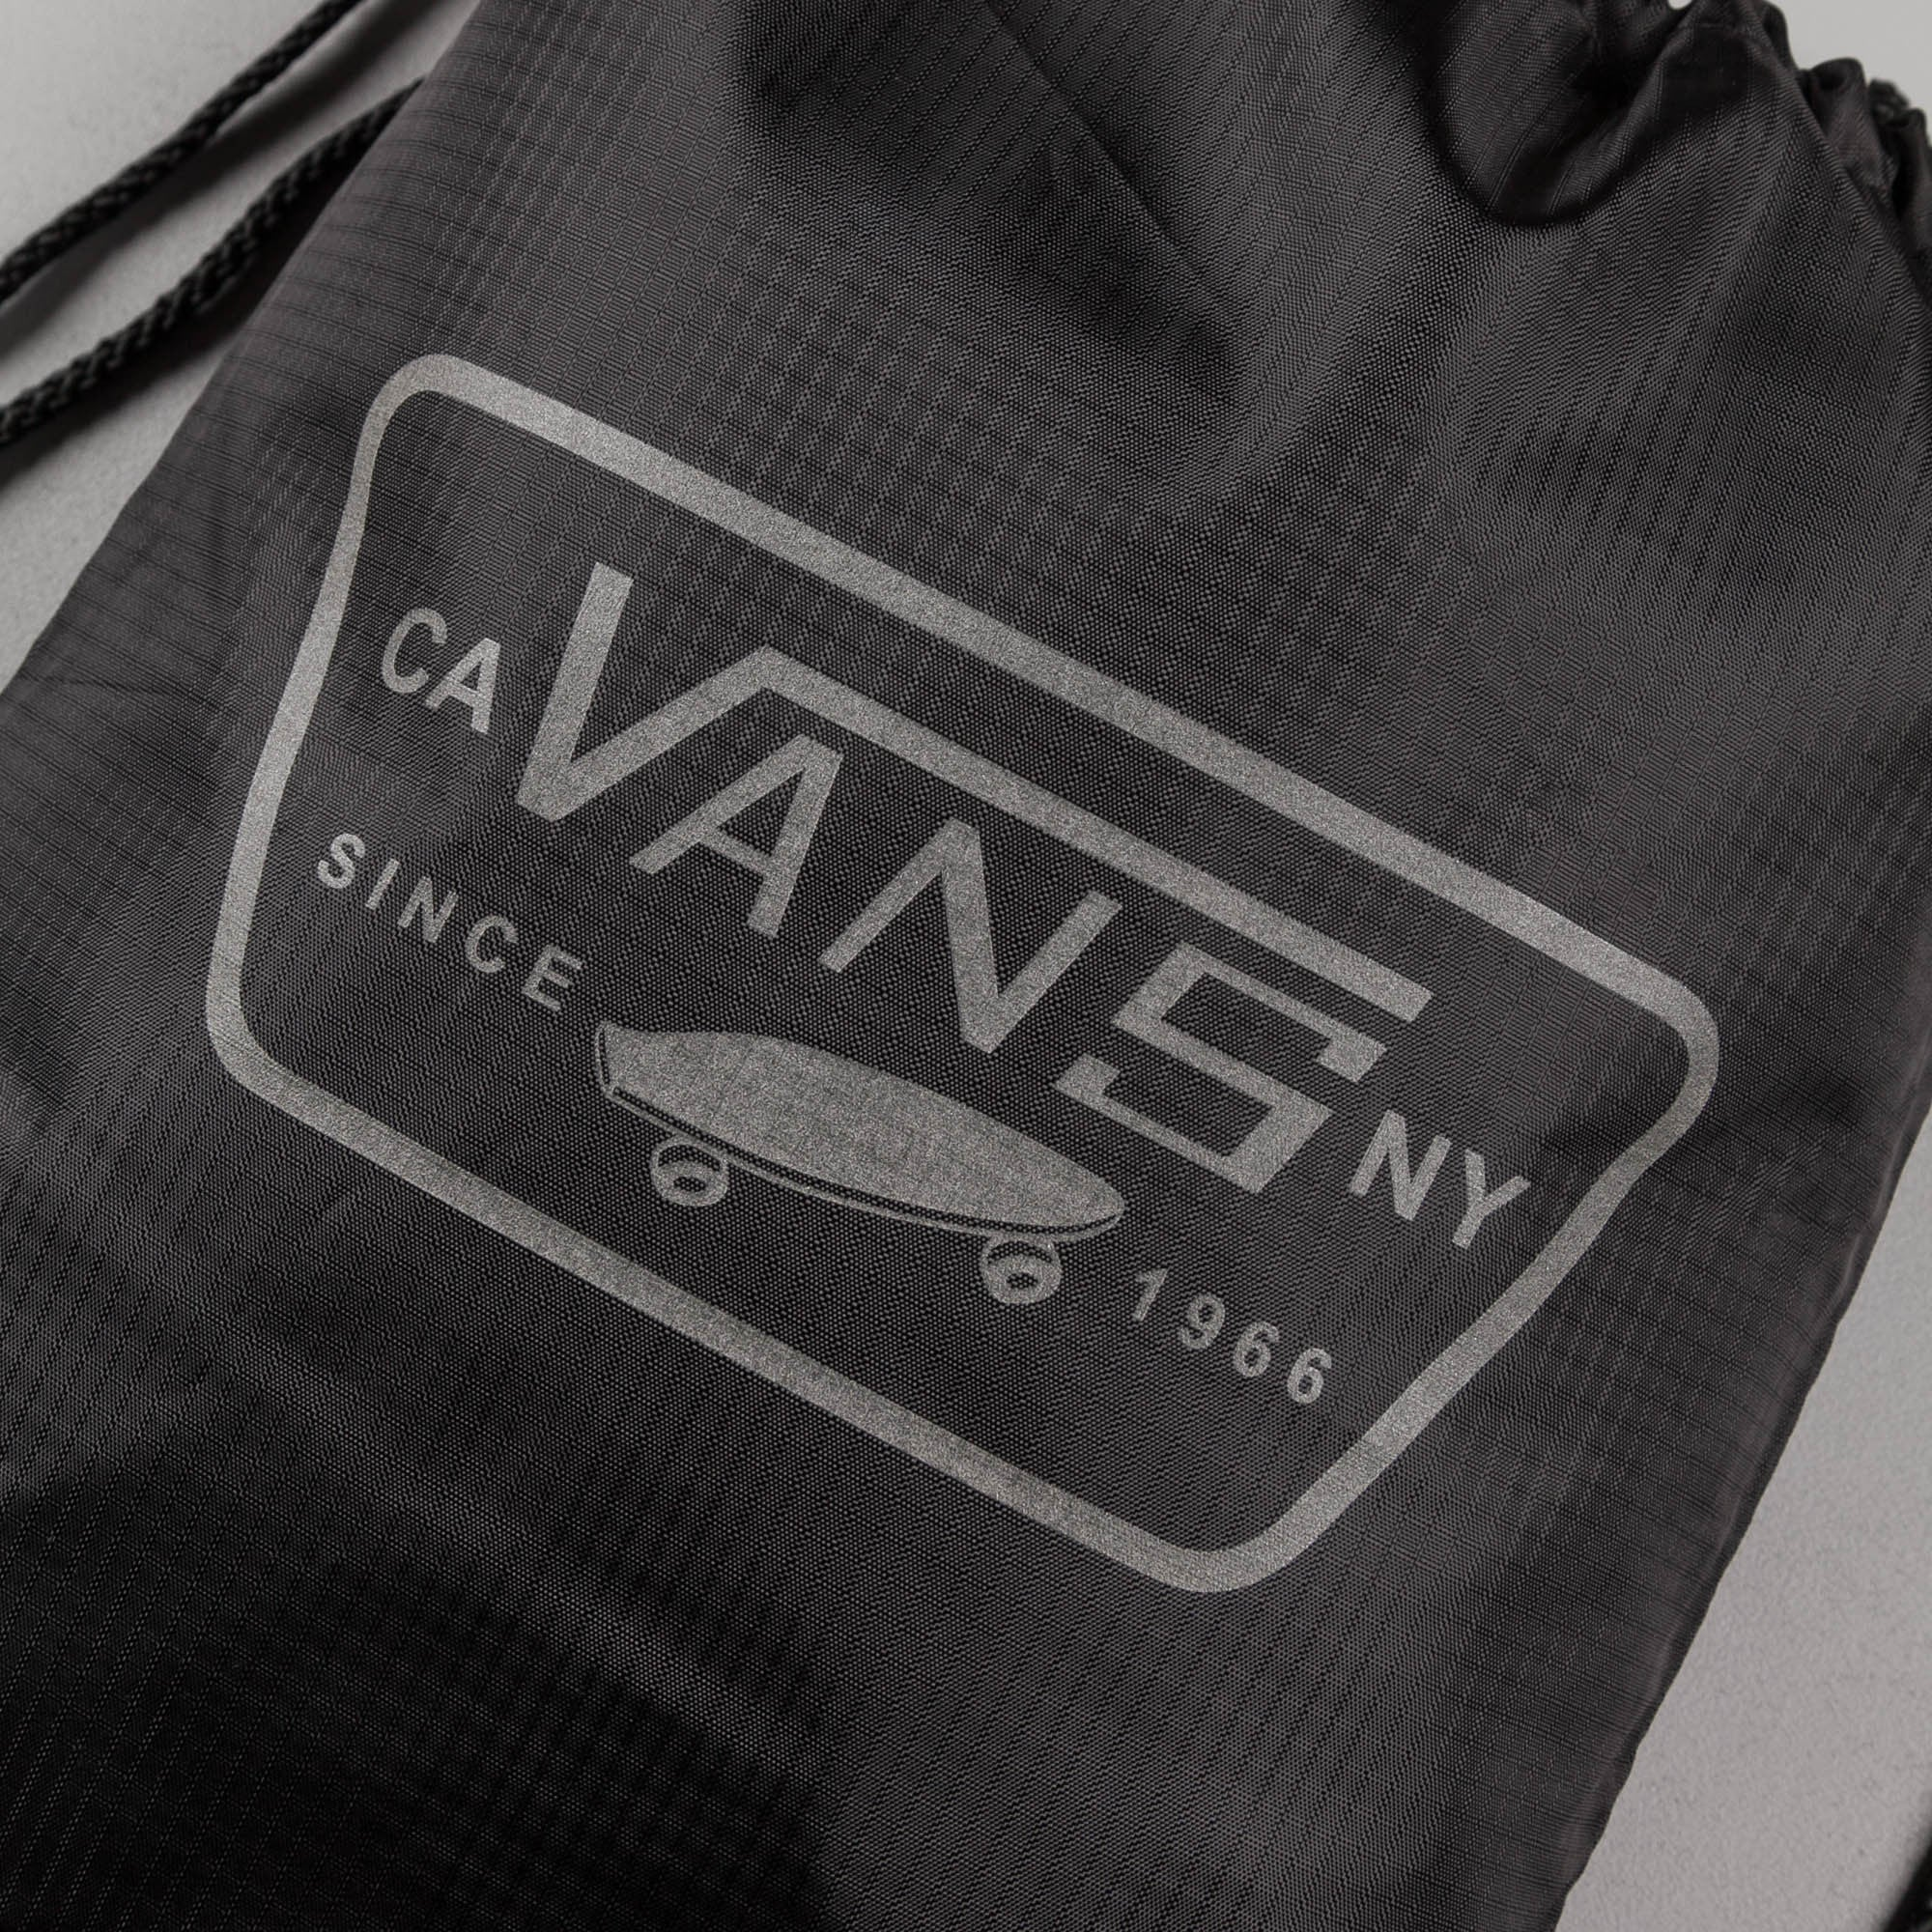 Vans League Bench Bag - Black Reflective